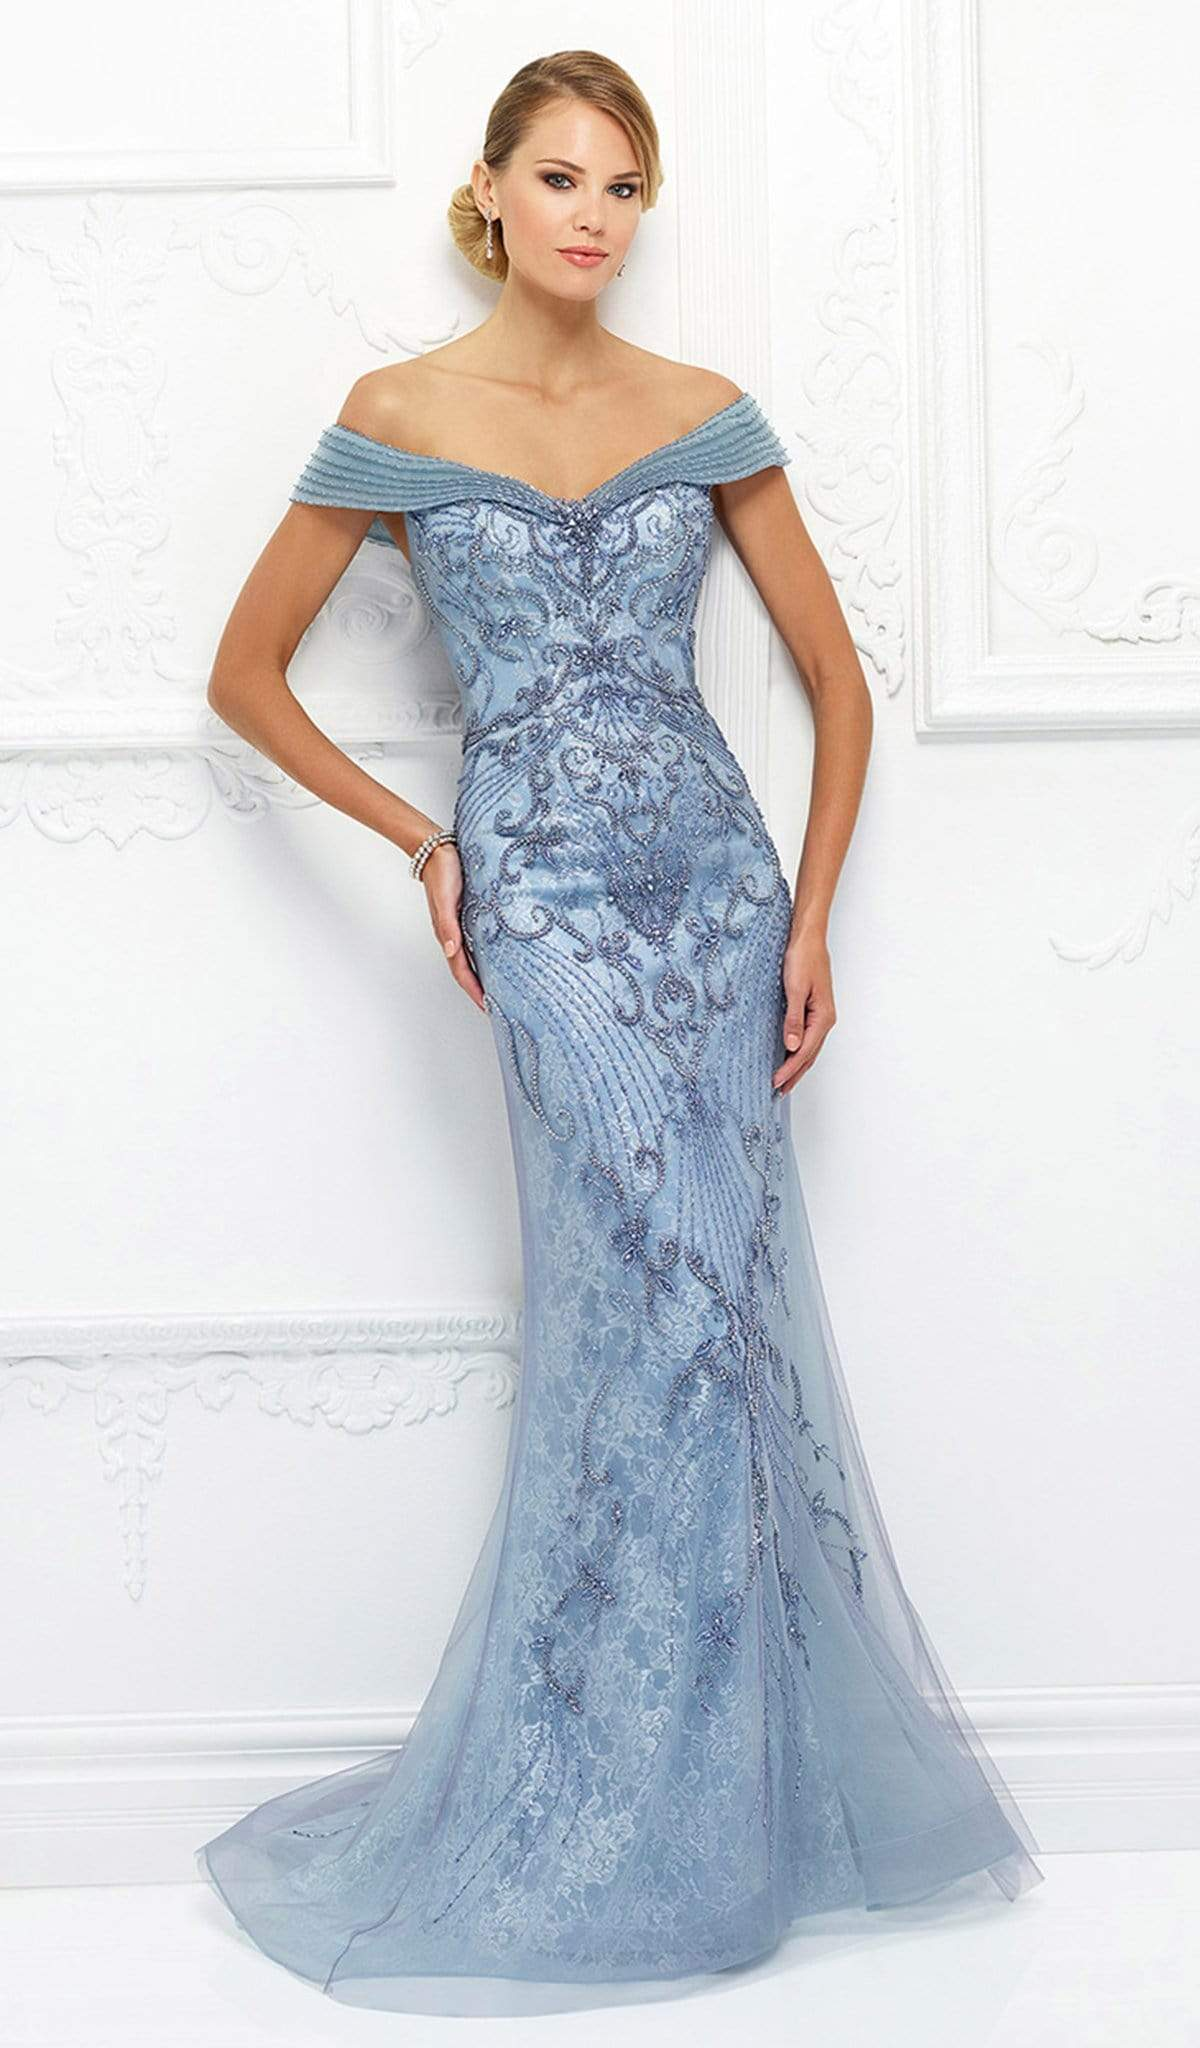 Mon Cheri - Beaded Lace Dress With Tulle Overlay 118D08 In Blue